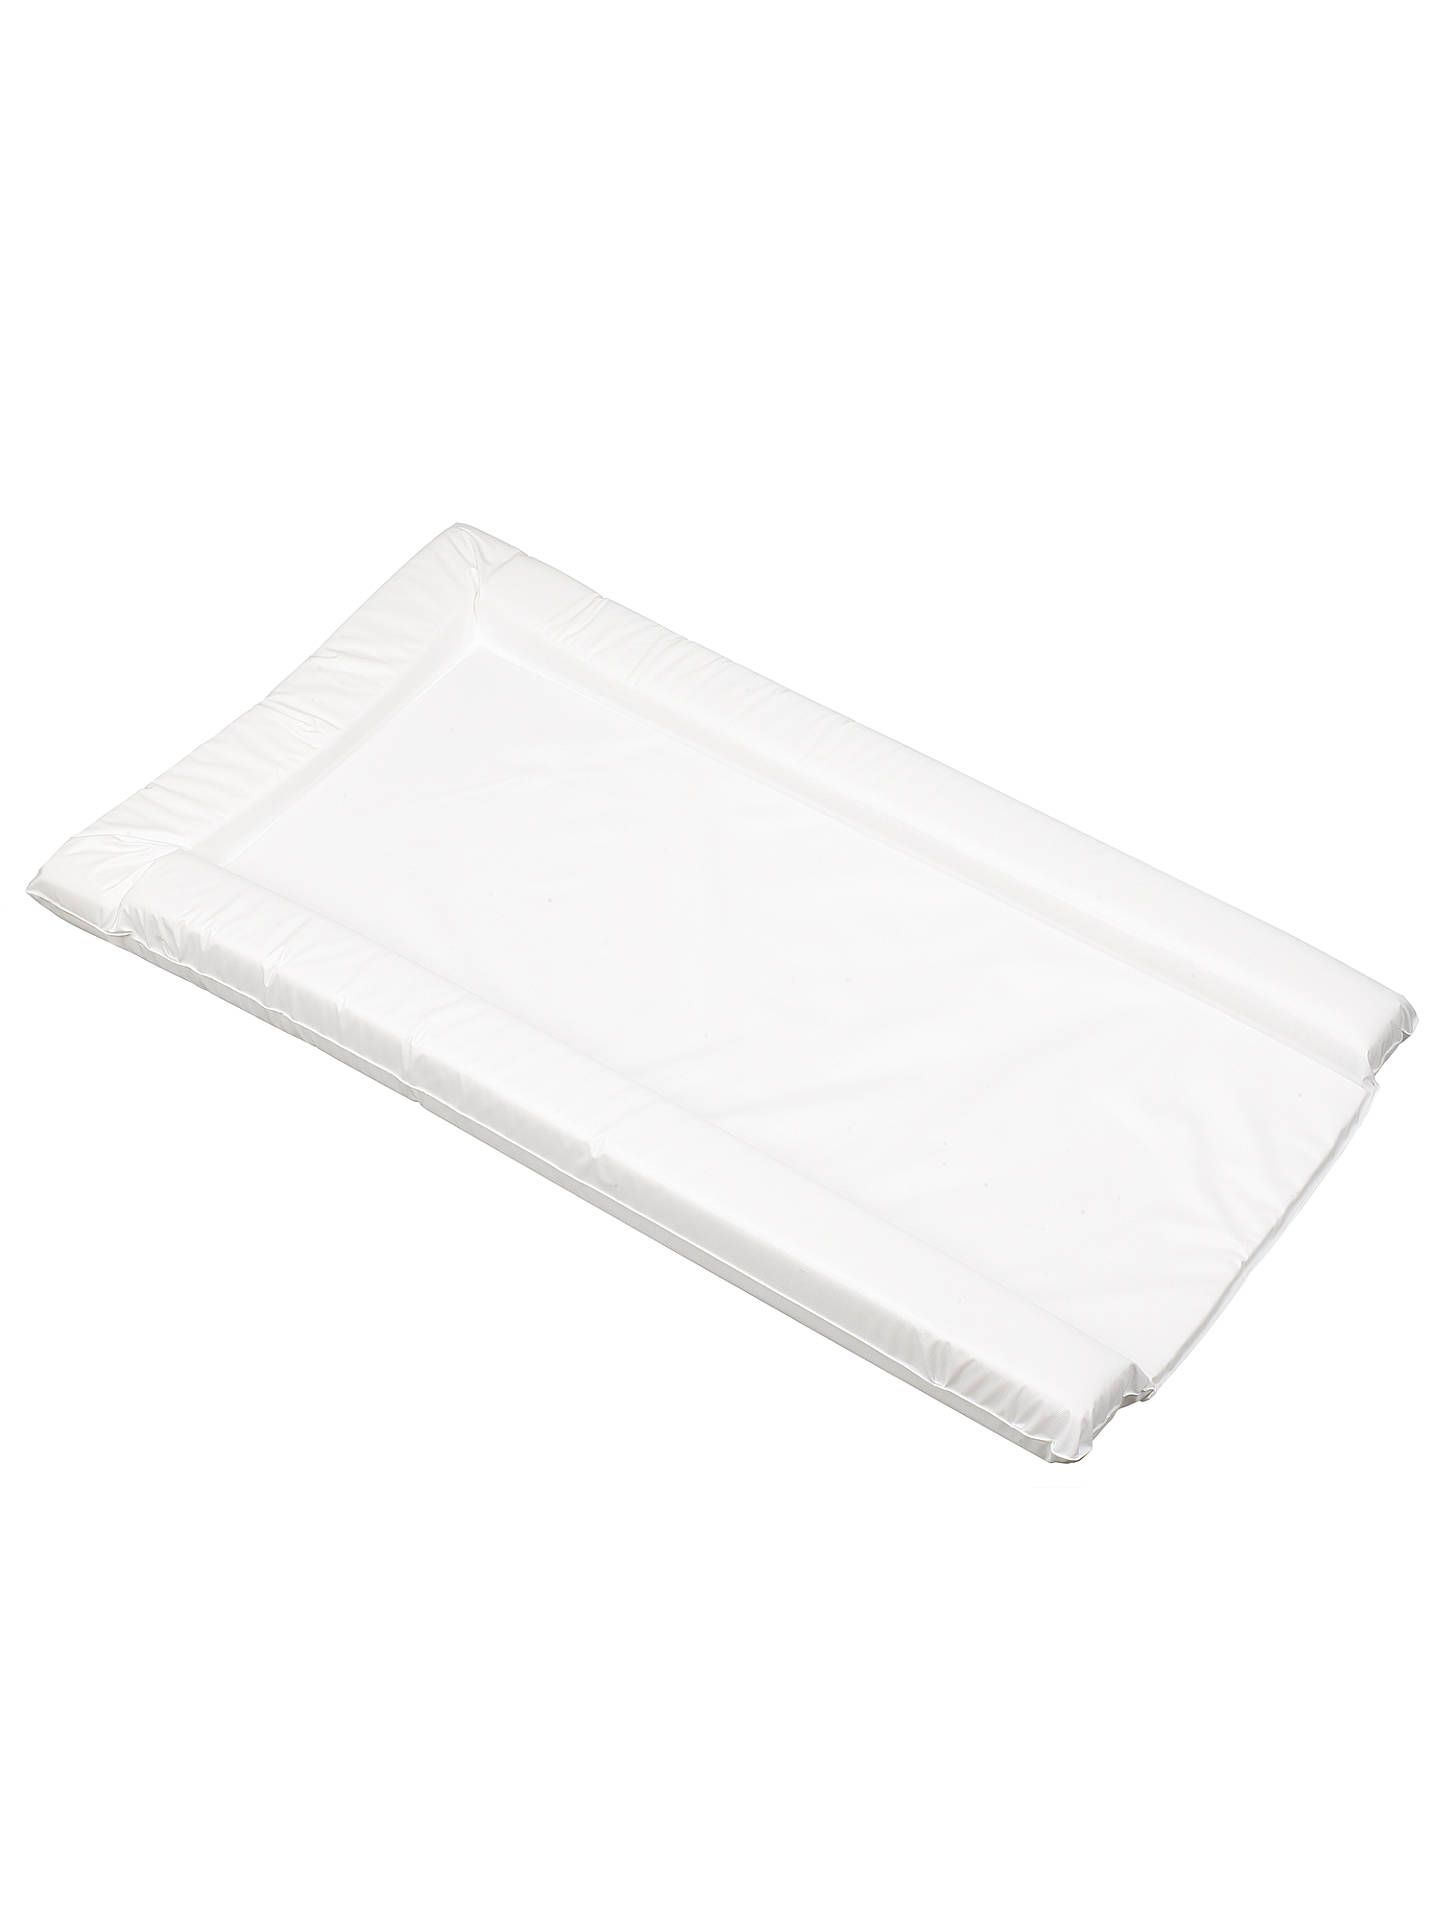 Buy John Lewis & Partners The Basics Changing Mat Online at johnlewis.com